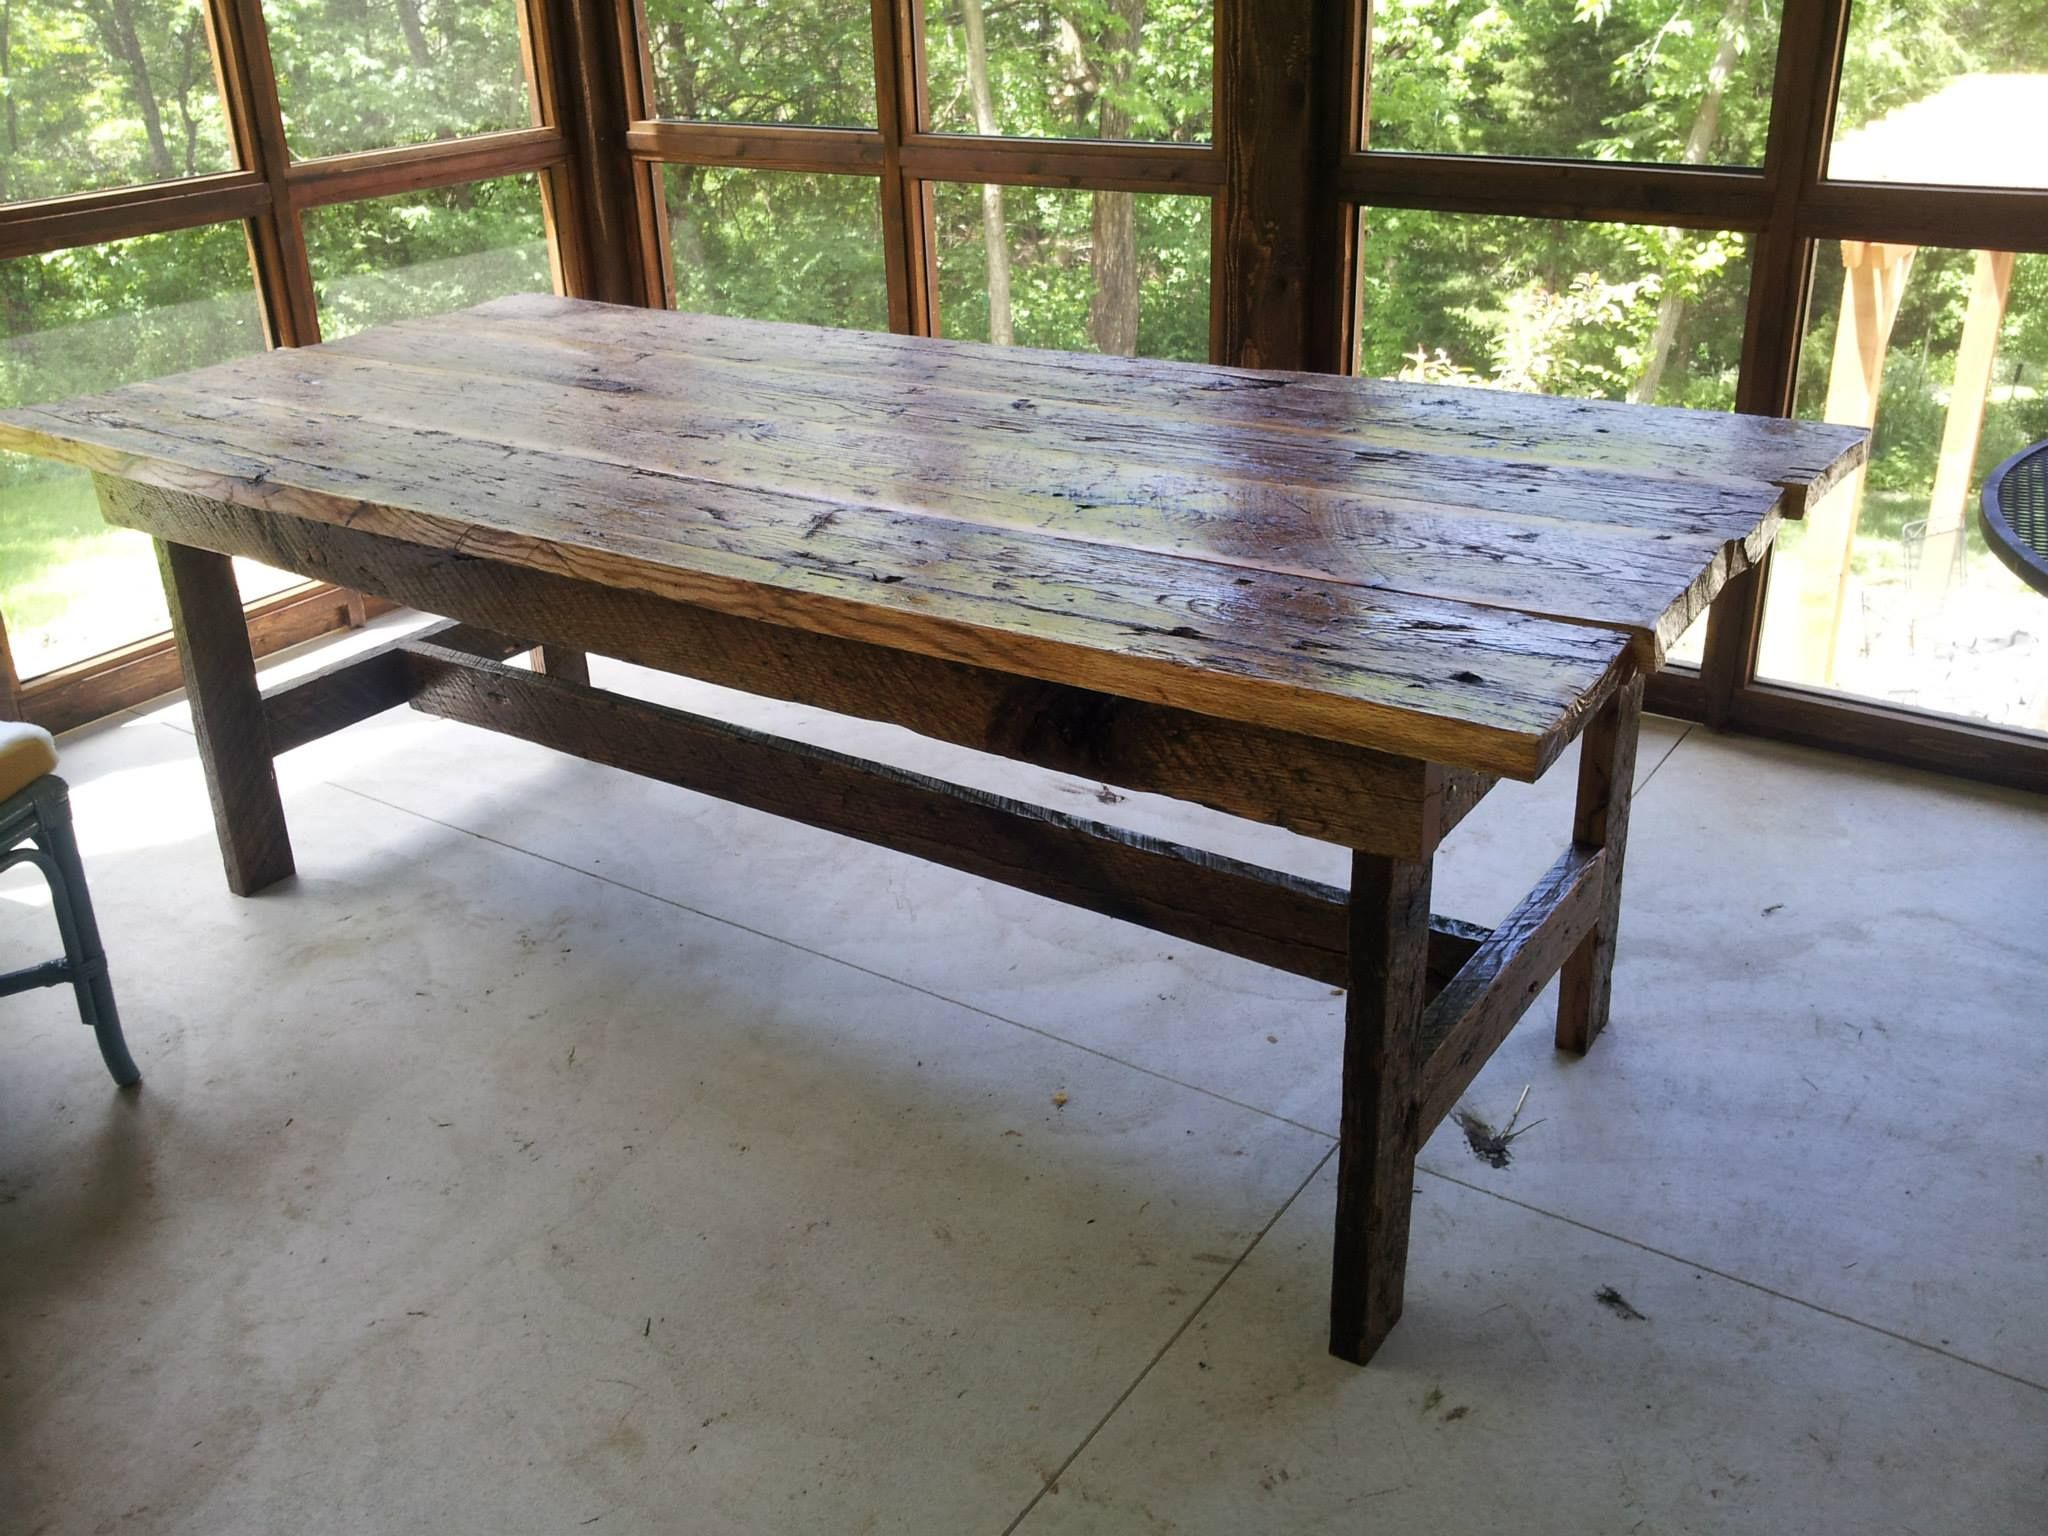 Rustic Kitchen Table  Things I Make & Sell  Pinterest  Rustic Extraordinary Rustic Kitchen Tables Inspiration Design